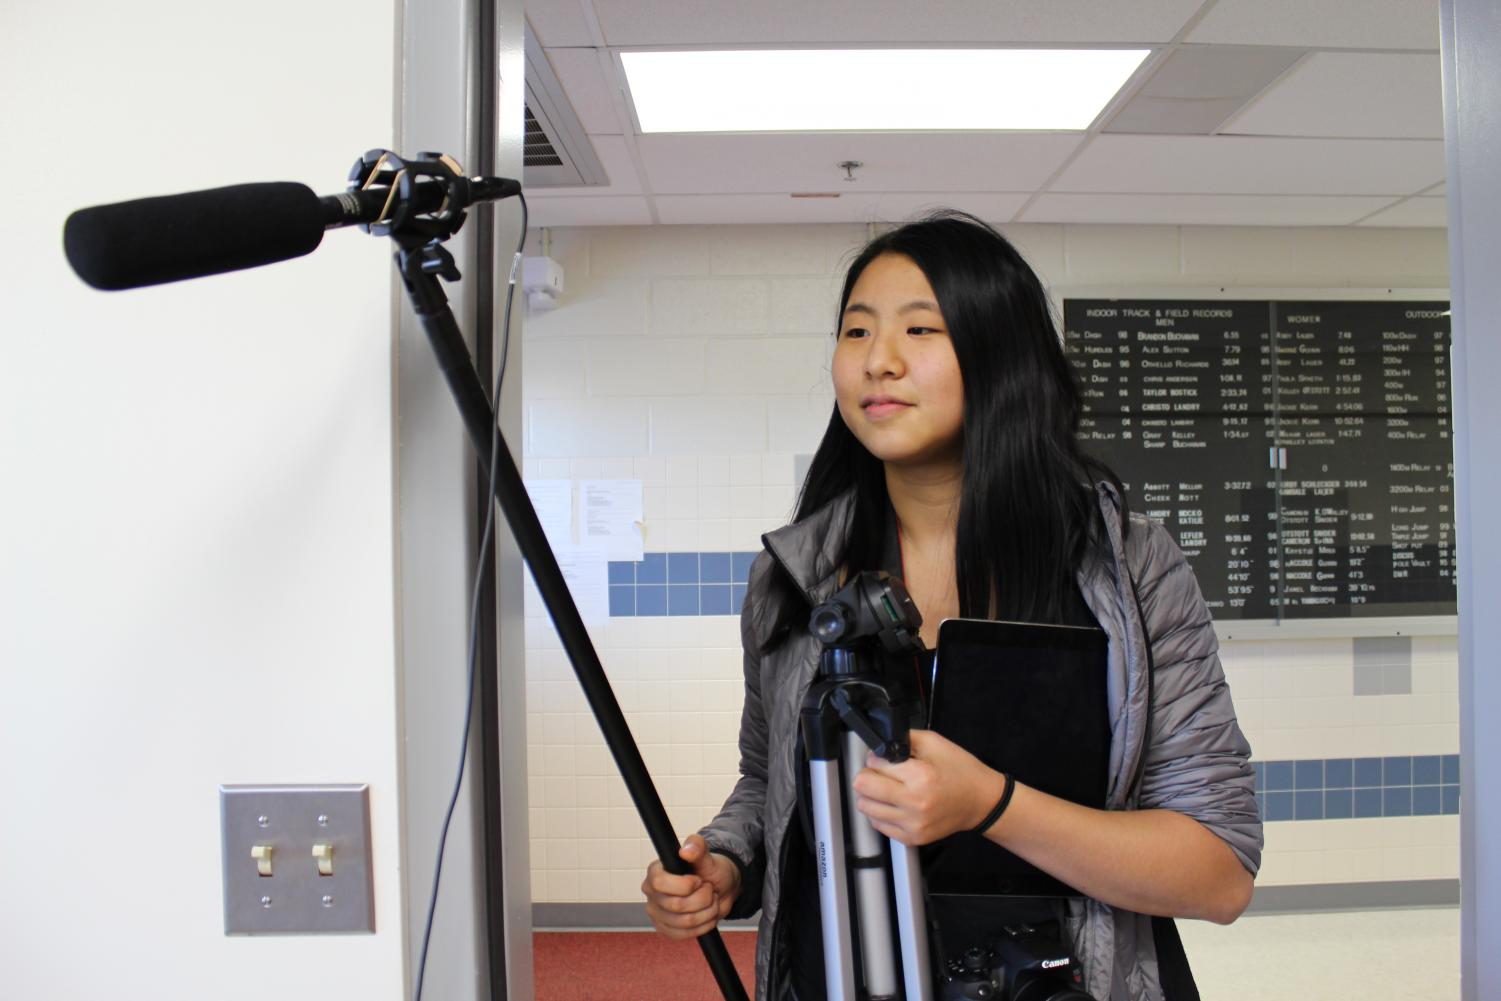 Carrying a tjTV tripod and microphone, Virginia Student Journalist of the Year Christine Zhao walks into the security room at Thomas Jefferson High School. Zhao was was preparing to interview security employee Charles Phillips for an online series on the stories of African-American students and staff.